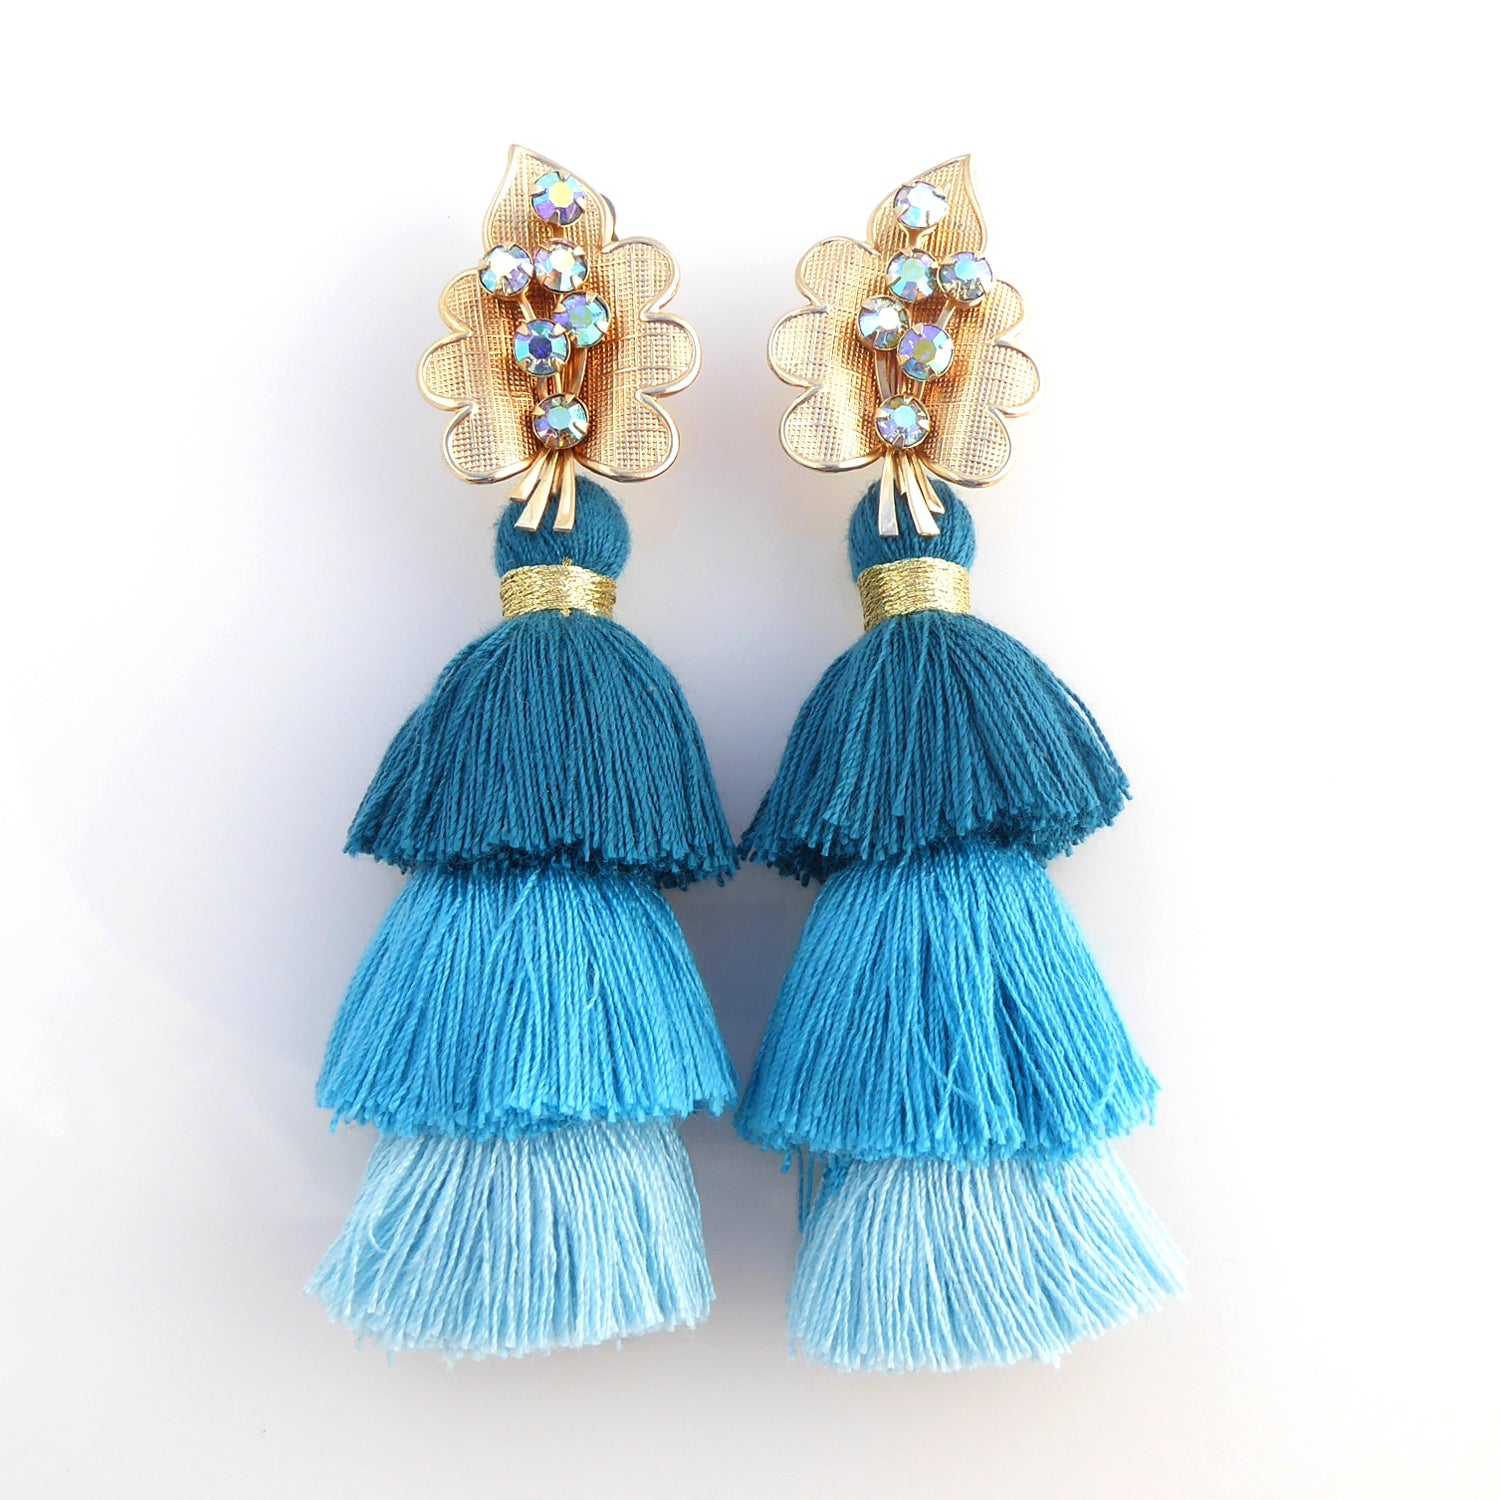 Iridescent leaf and teal blue tassel earrings by Jenny Dayco 1